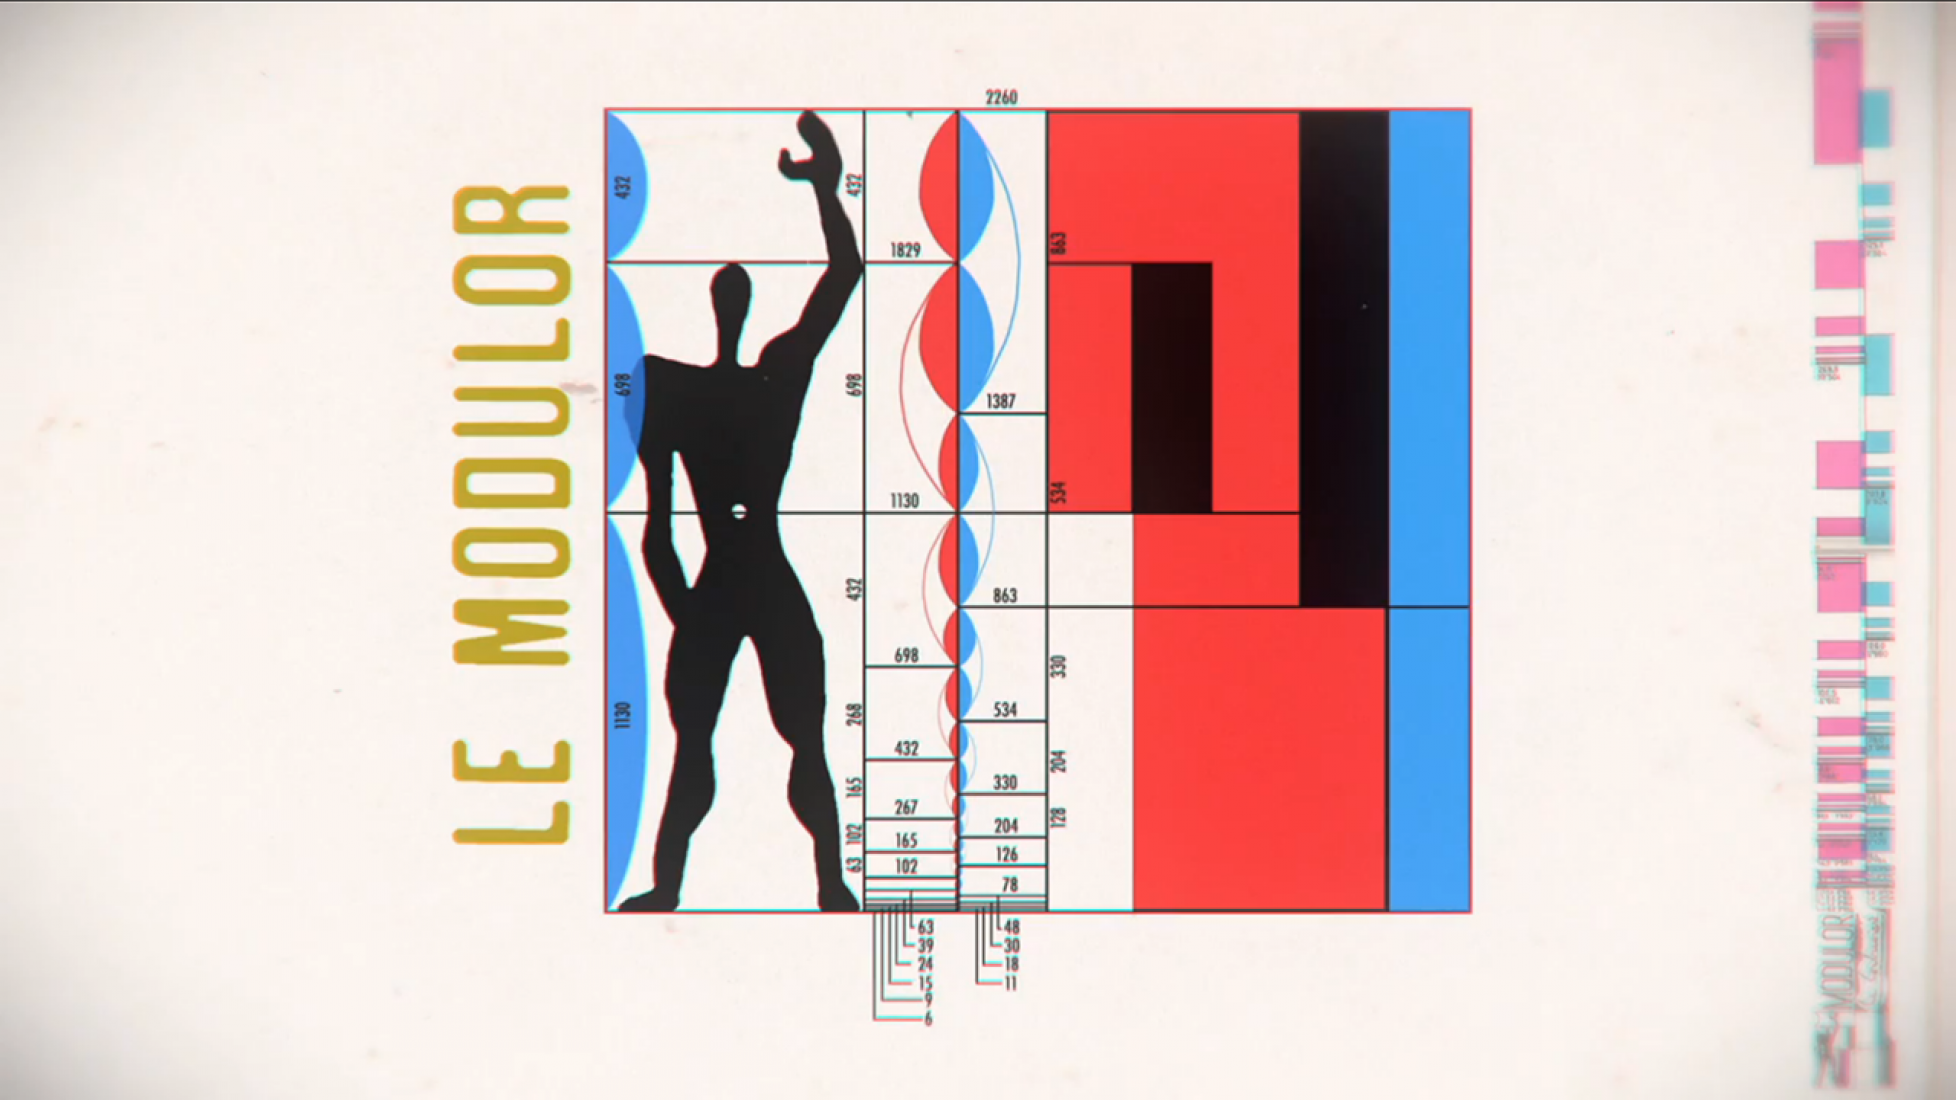 Two minutes to explain The Design Principles of Le Corbusier ...